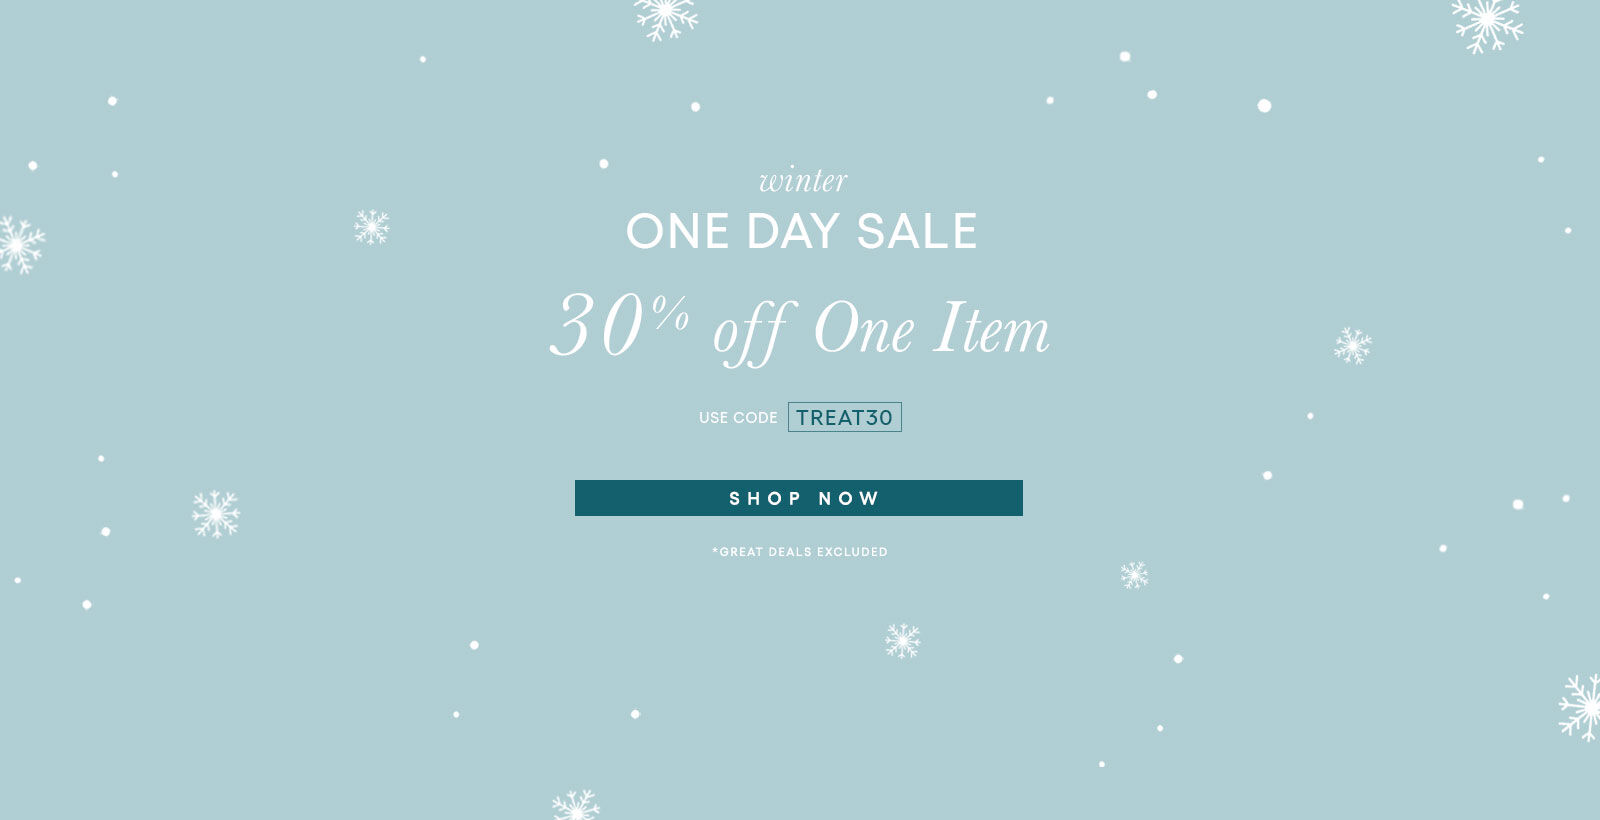 30% off One Item with code TREAT30